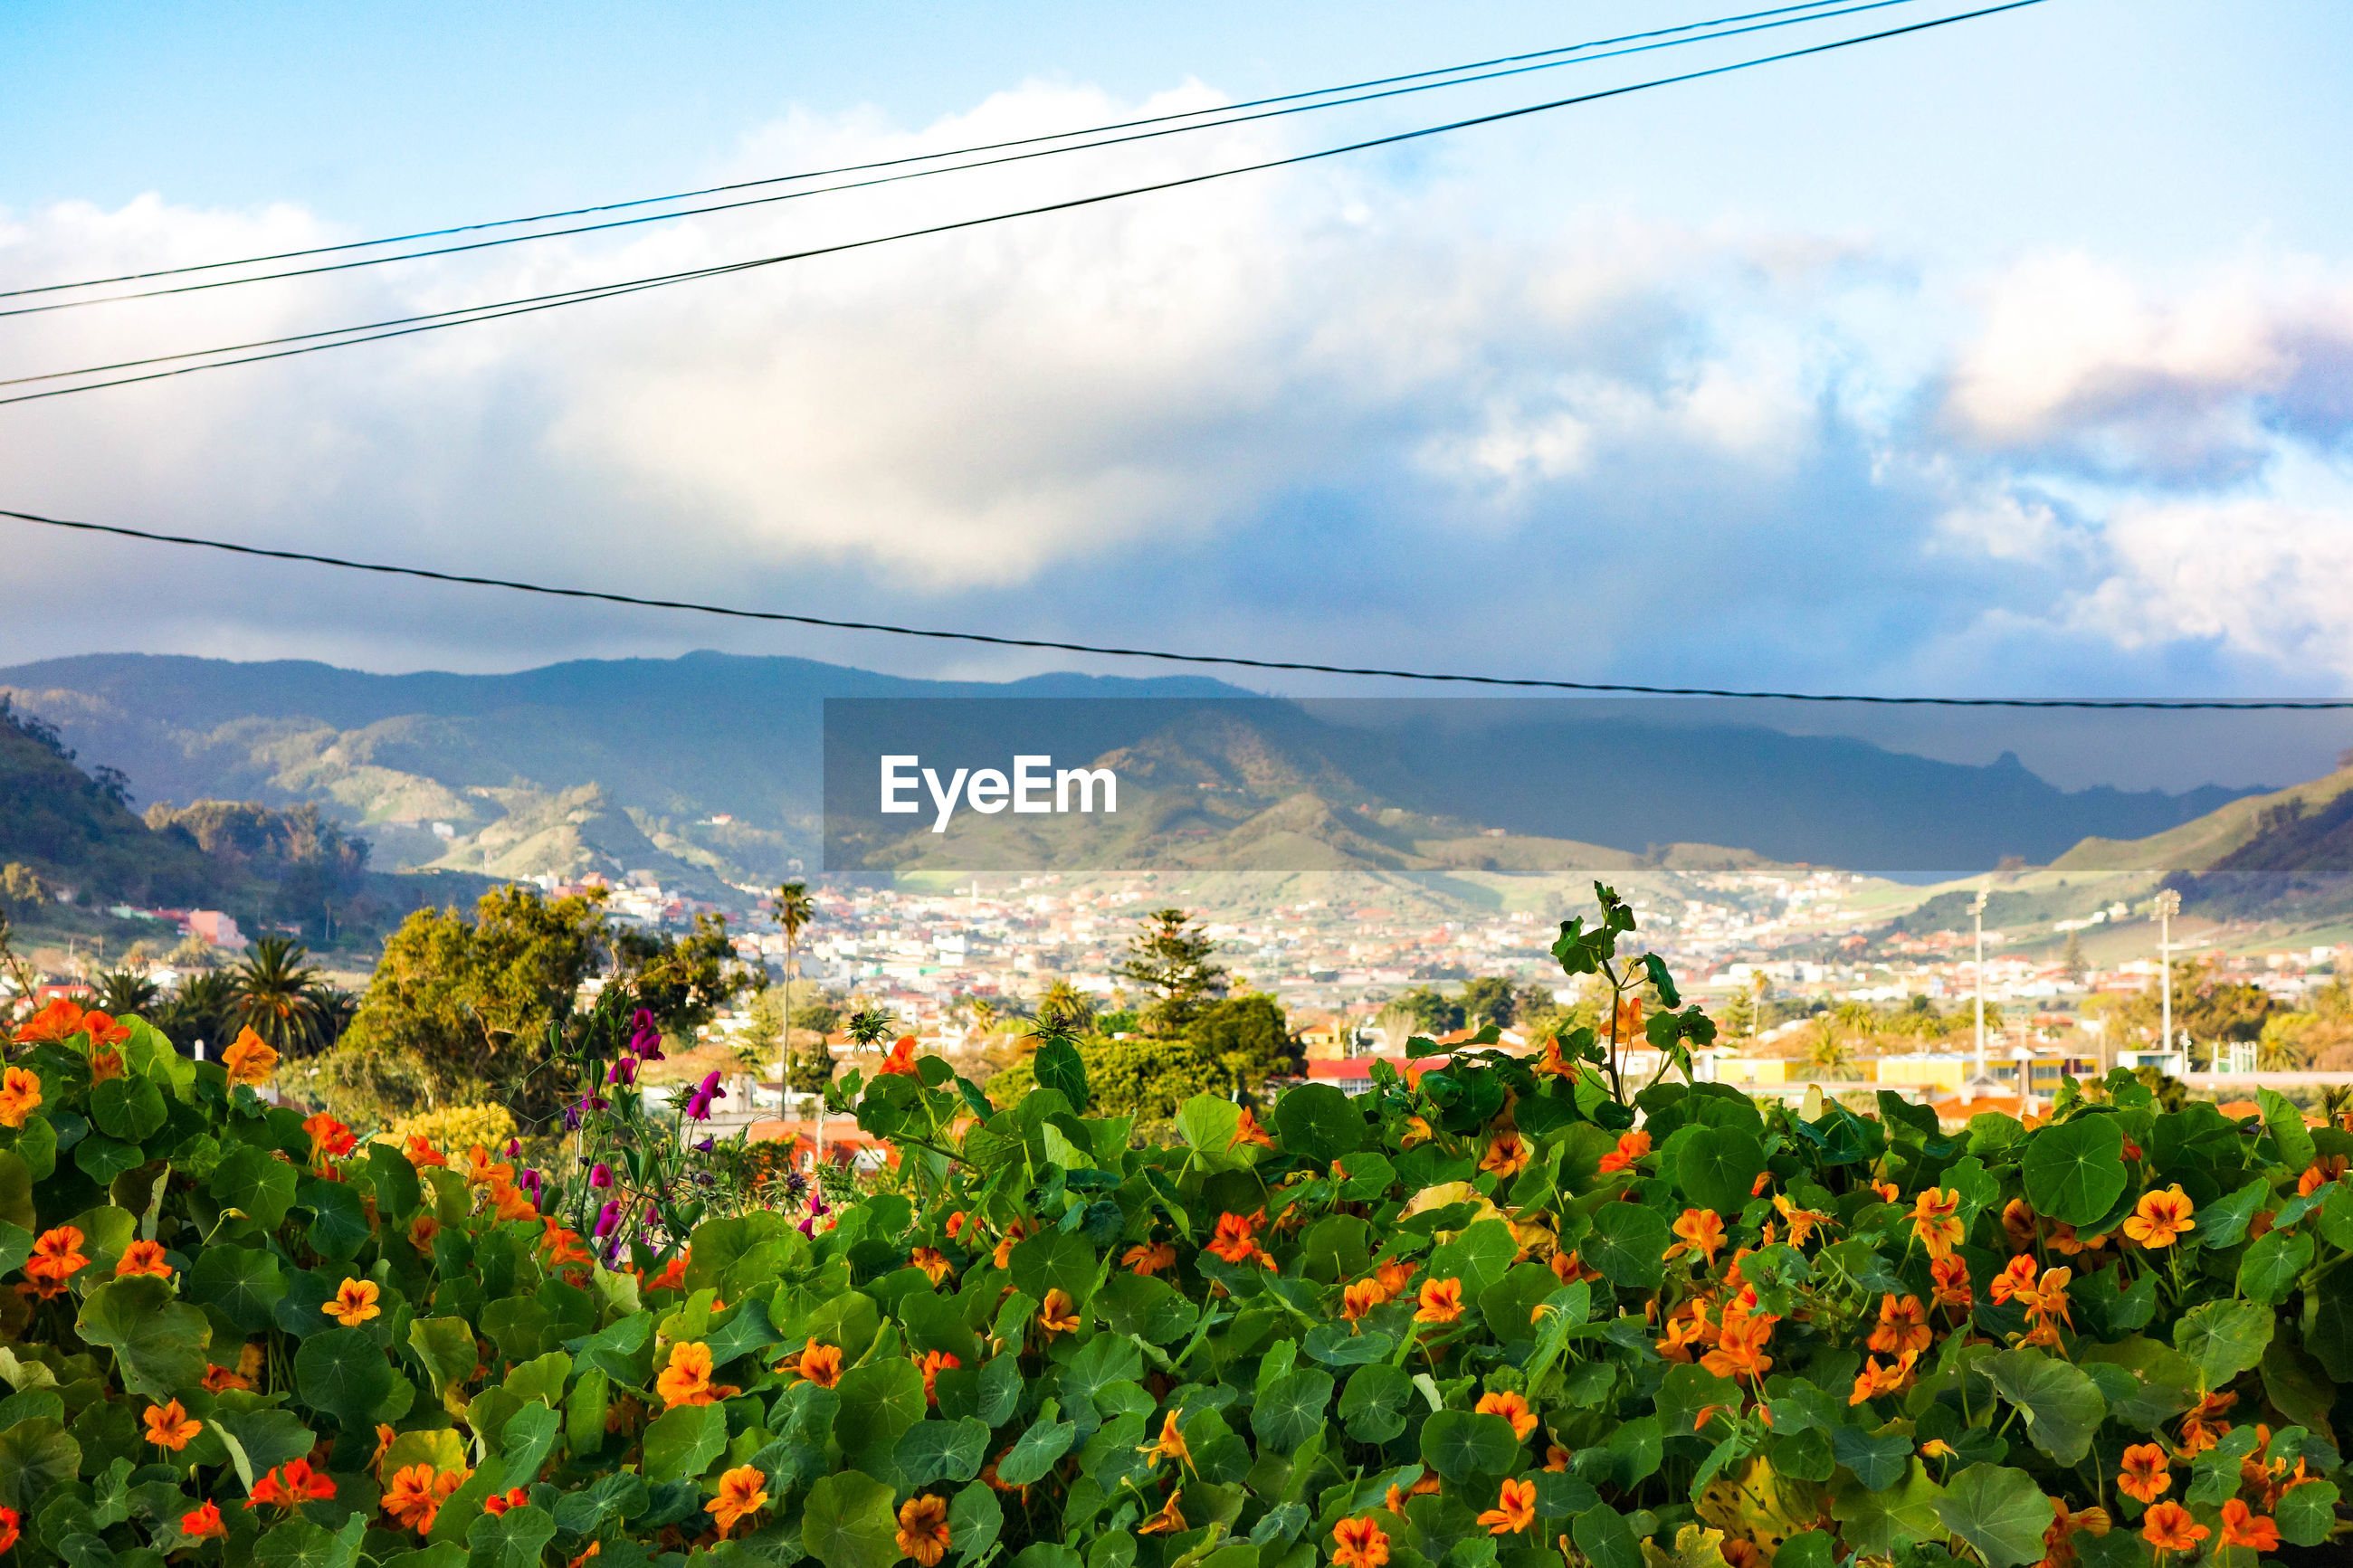 SCENIC VIEW OF FLOWERS IN FRONT OF MOUNTAINS AGAINST SKY